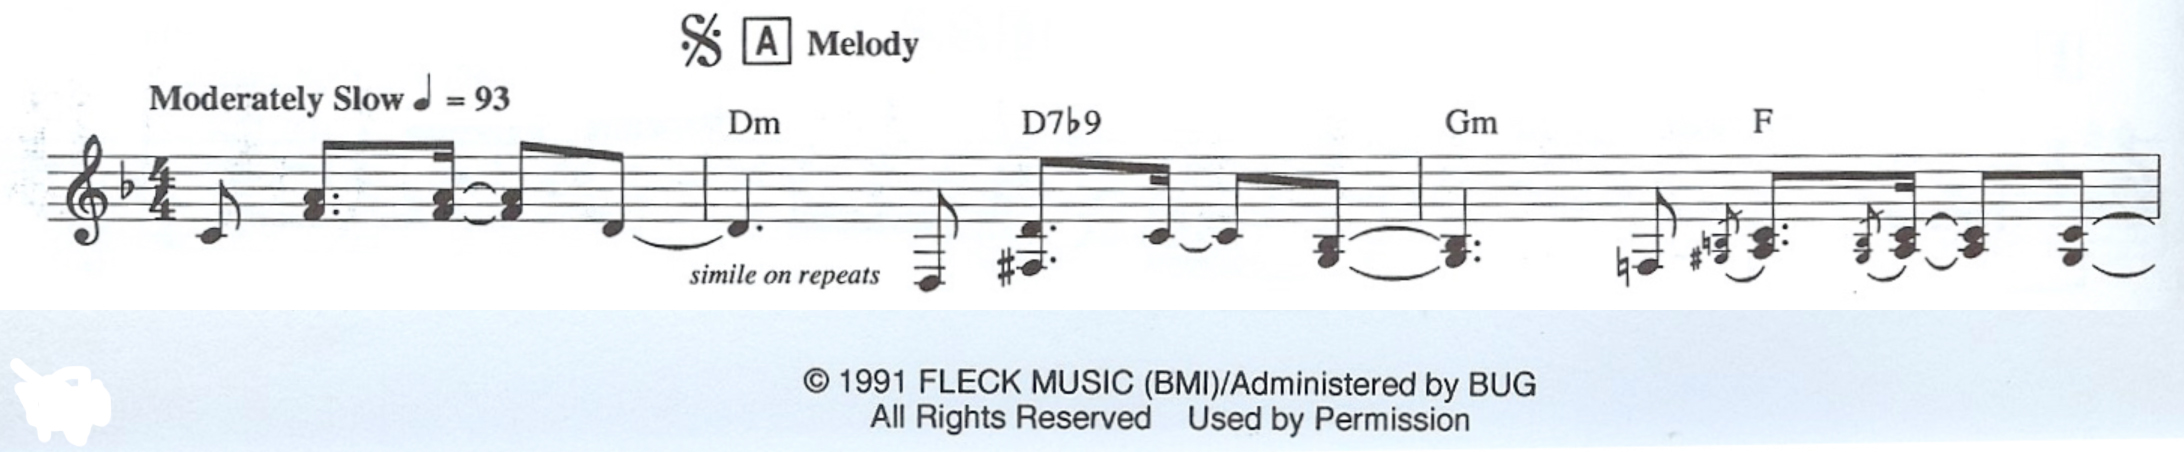 excerpt from the leadsheet of Béla Fleck's composition